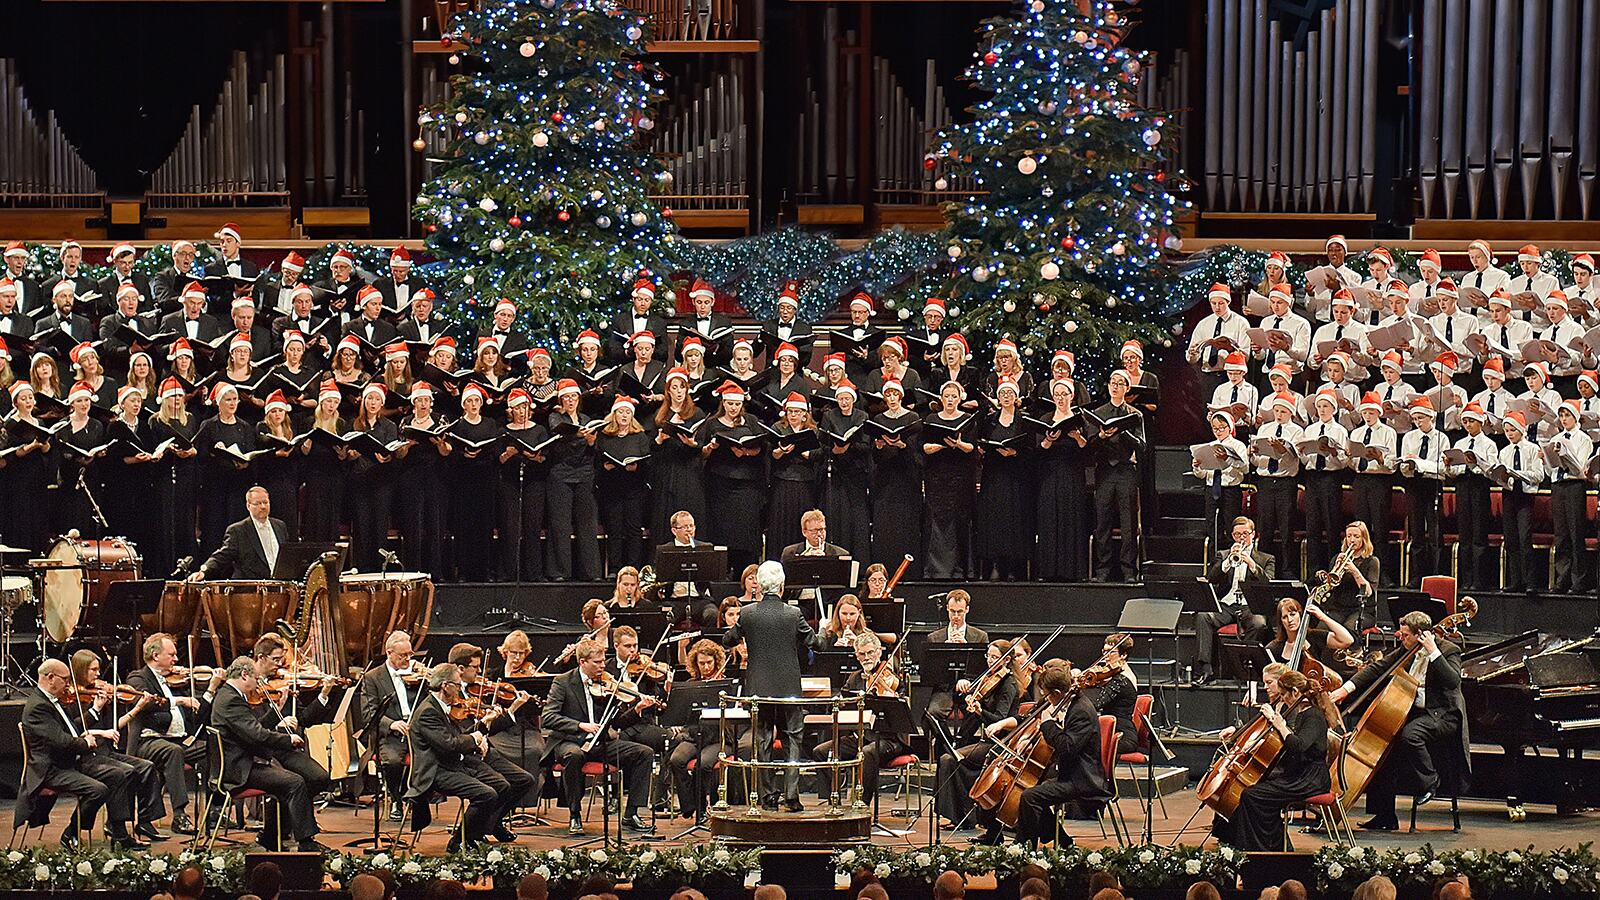 Christmas concert in Royal Festival Hall